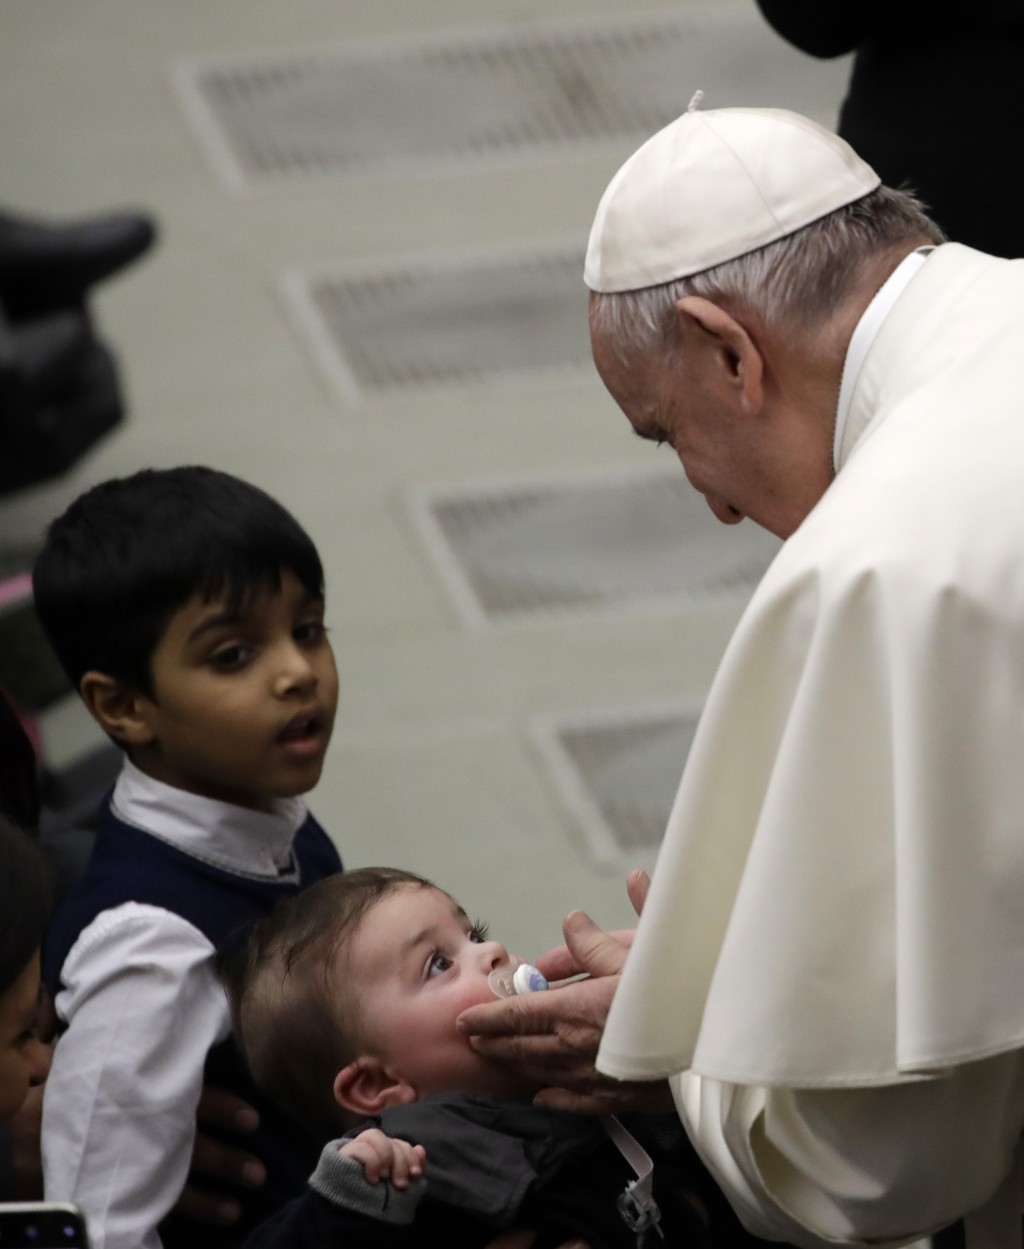 Pope Francis caresses a child during his weekly general audience in the Paul VI Hall at the Vatican Wednesday, Feb. 20, 2019. (AP Photo/Alessandra Tar